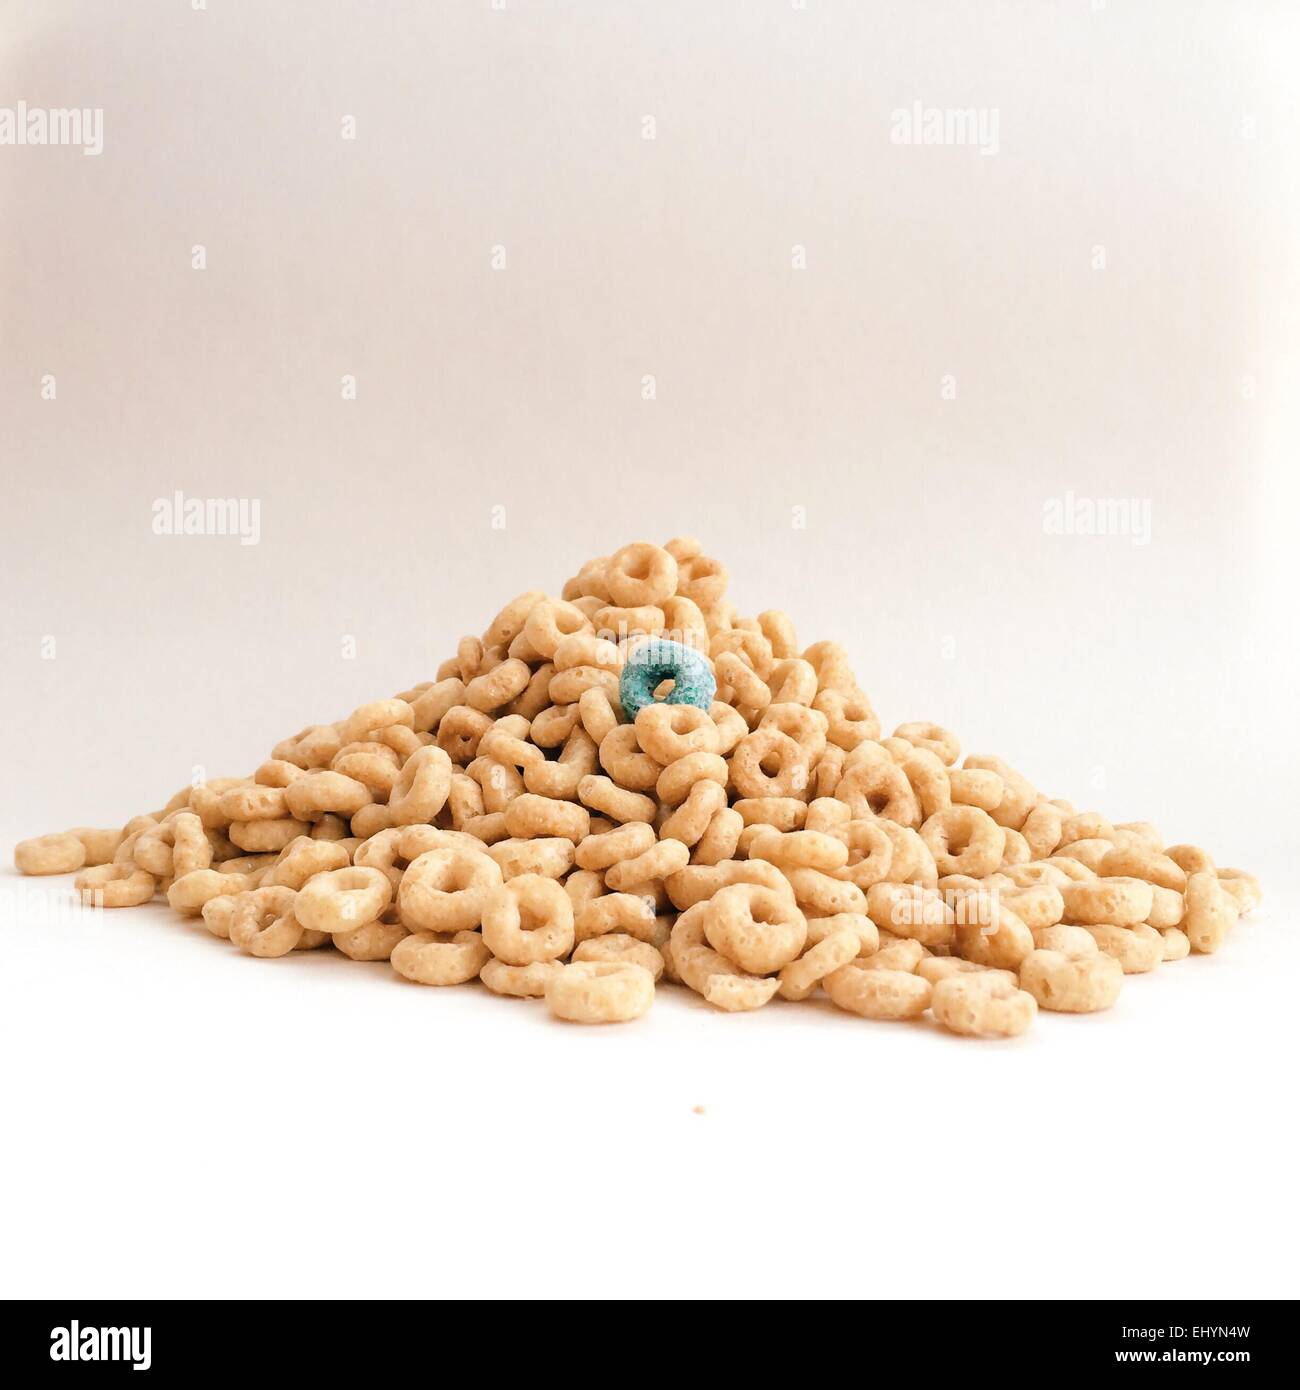 Pile of breakfast cereals with one blue cereal - Stock Image